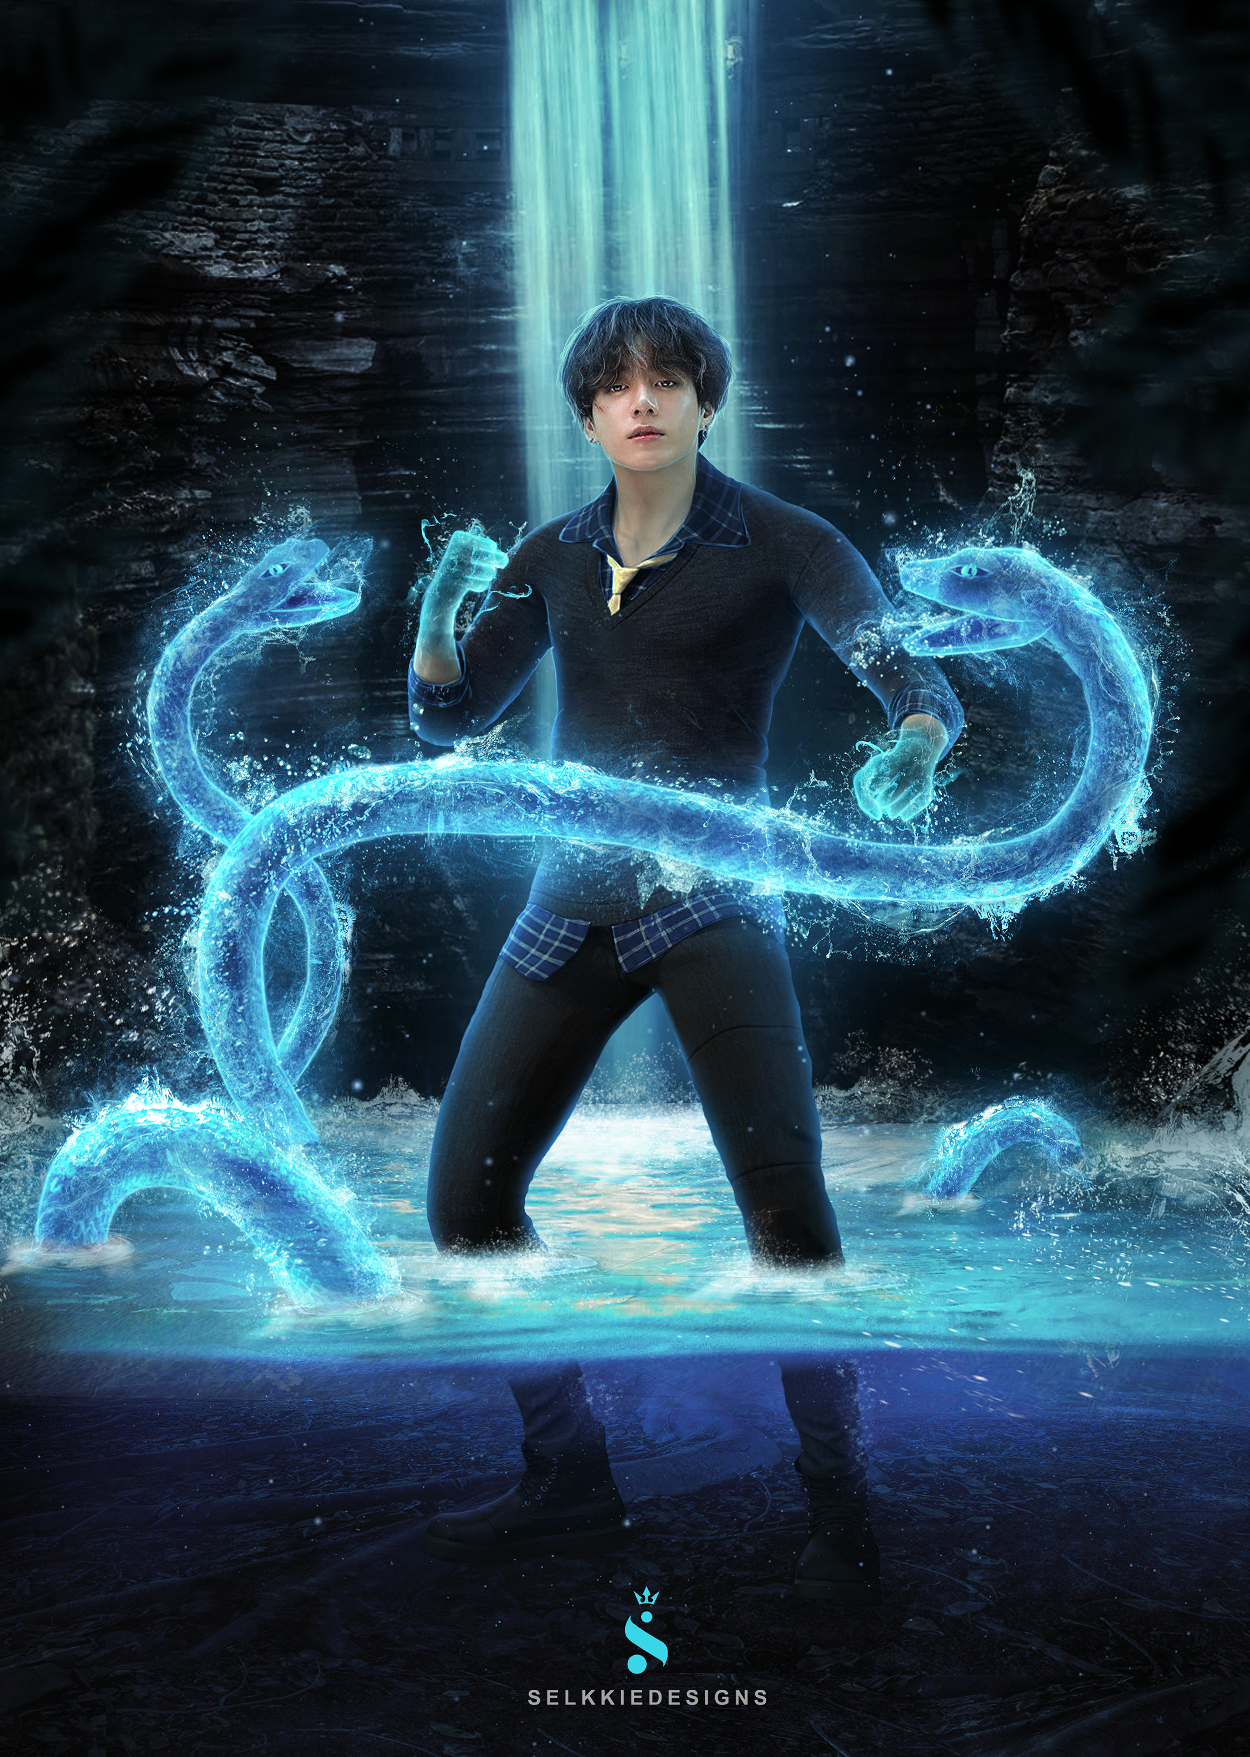 Water Bender - Jungkook Manipulation